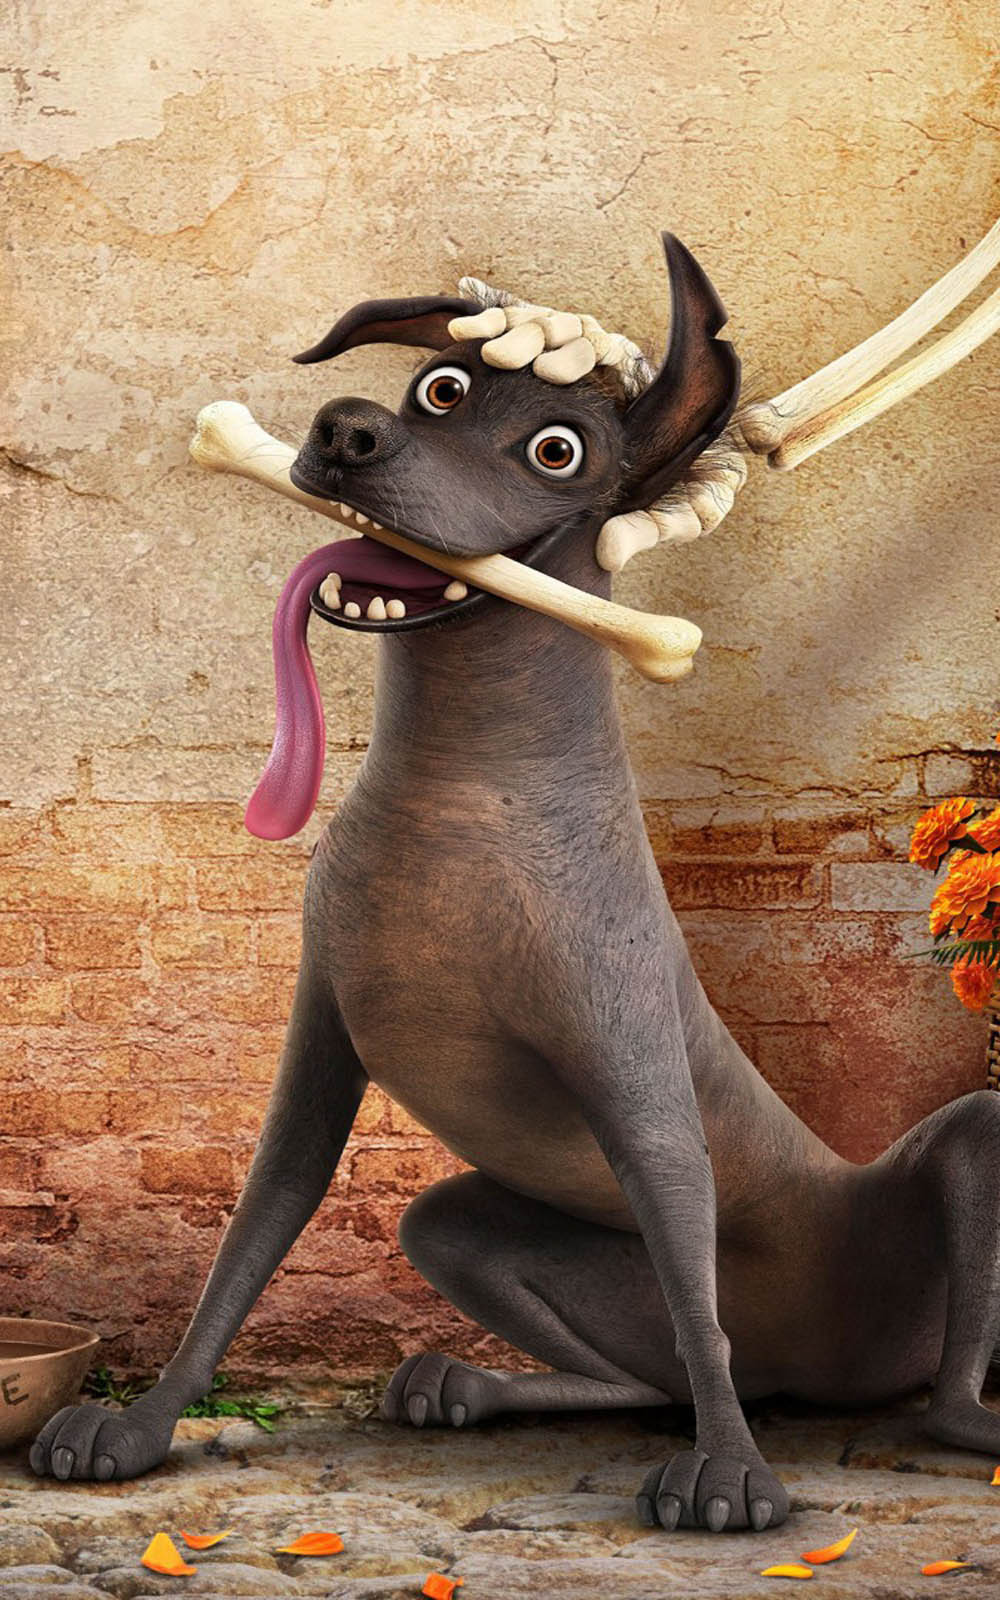 Hd Car Wallpapers For Mobile Free Download Dante Dog In Coco Download Free 100 Pure Hd Quality